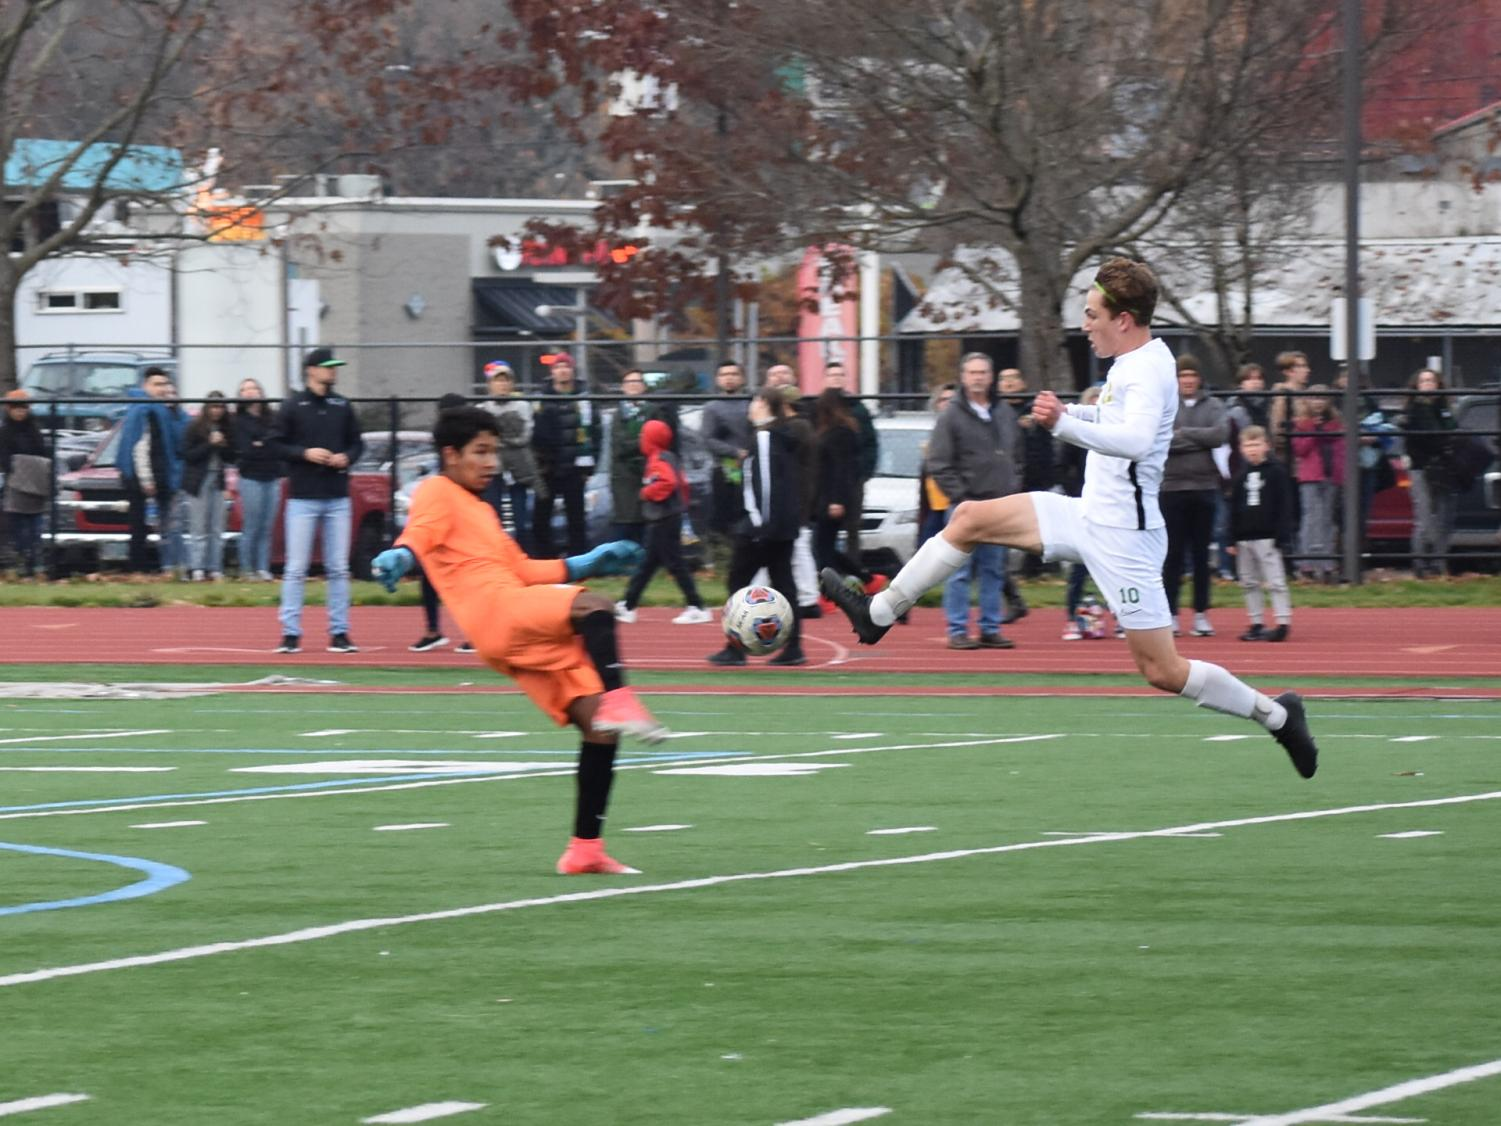 Harry+Ritter-West+goes+for+the+ball+at+Gresham+High+School+in+the+OSAA+Quarterfinals